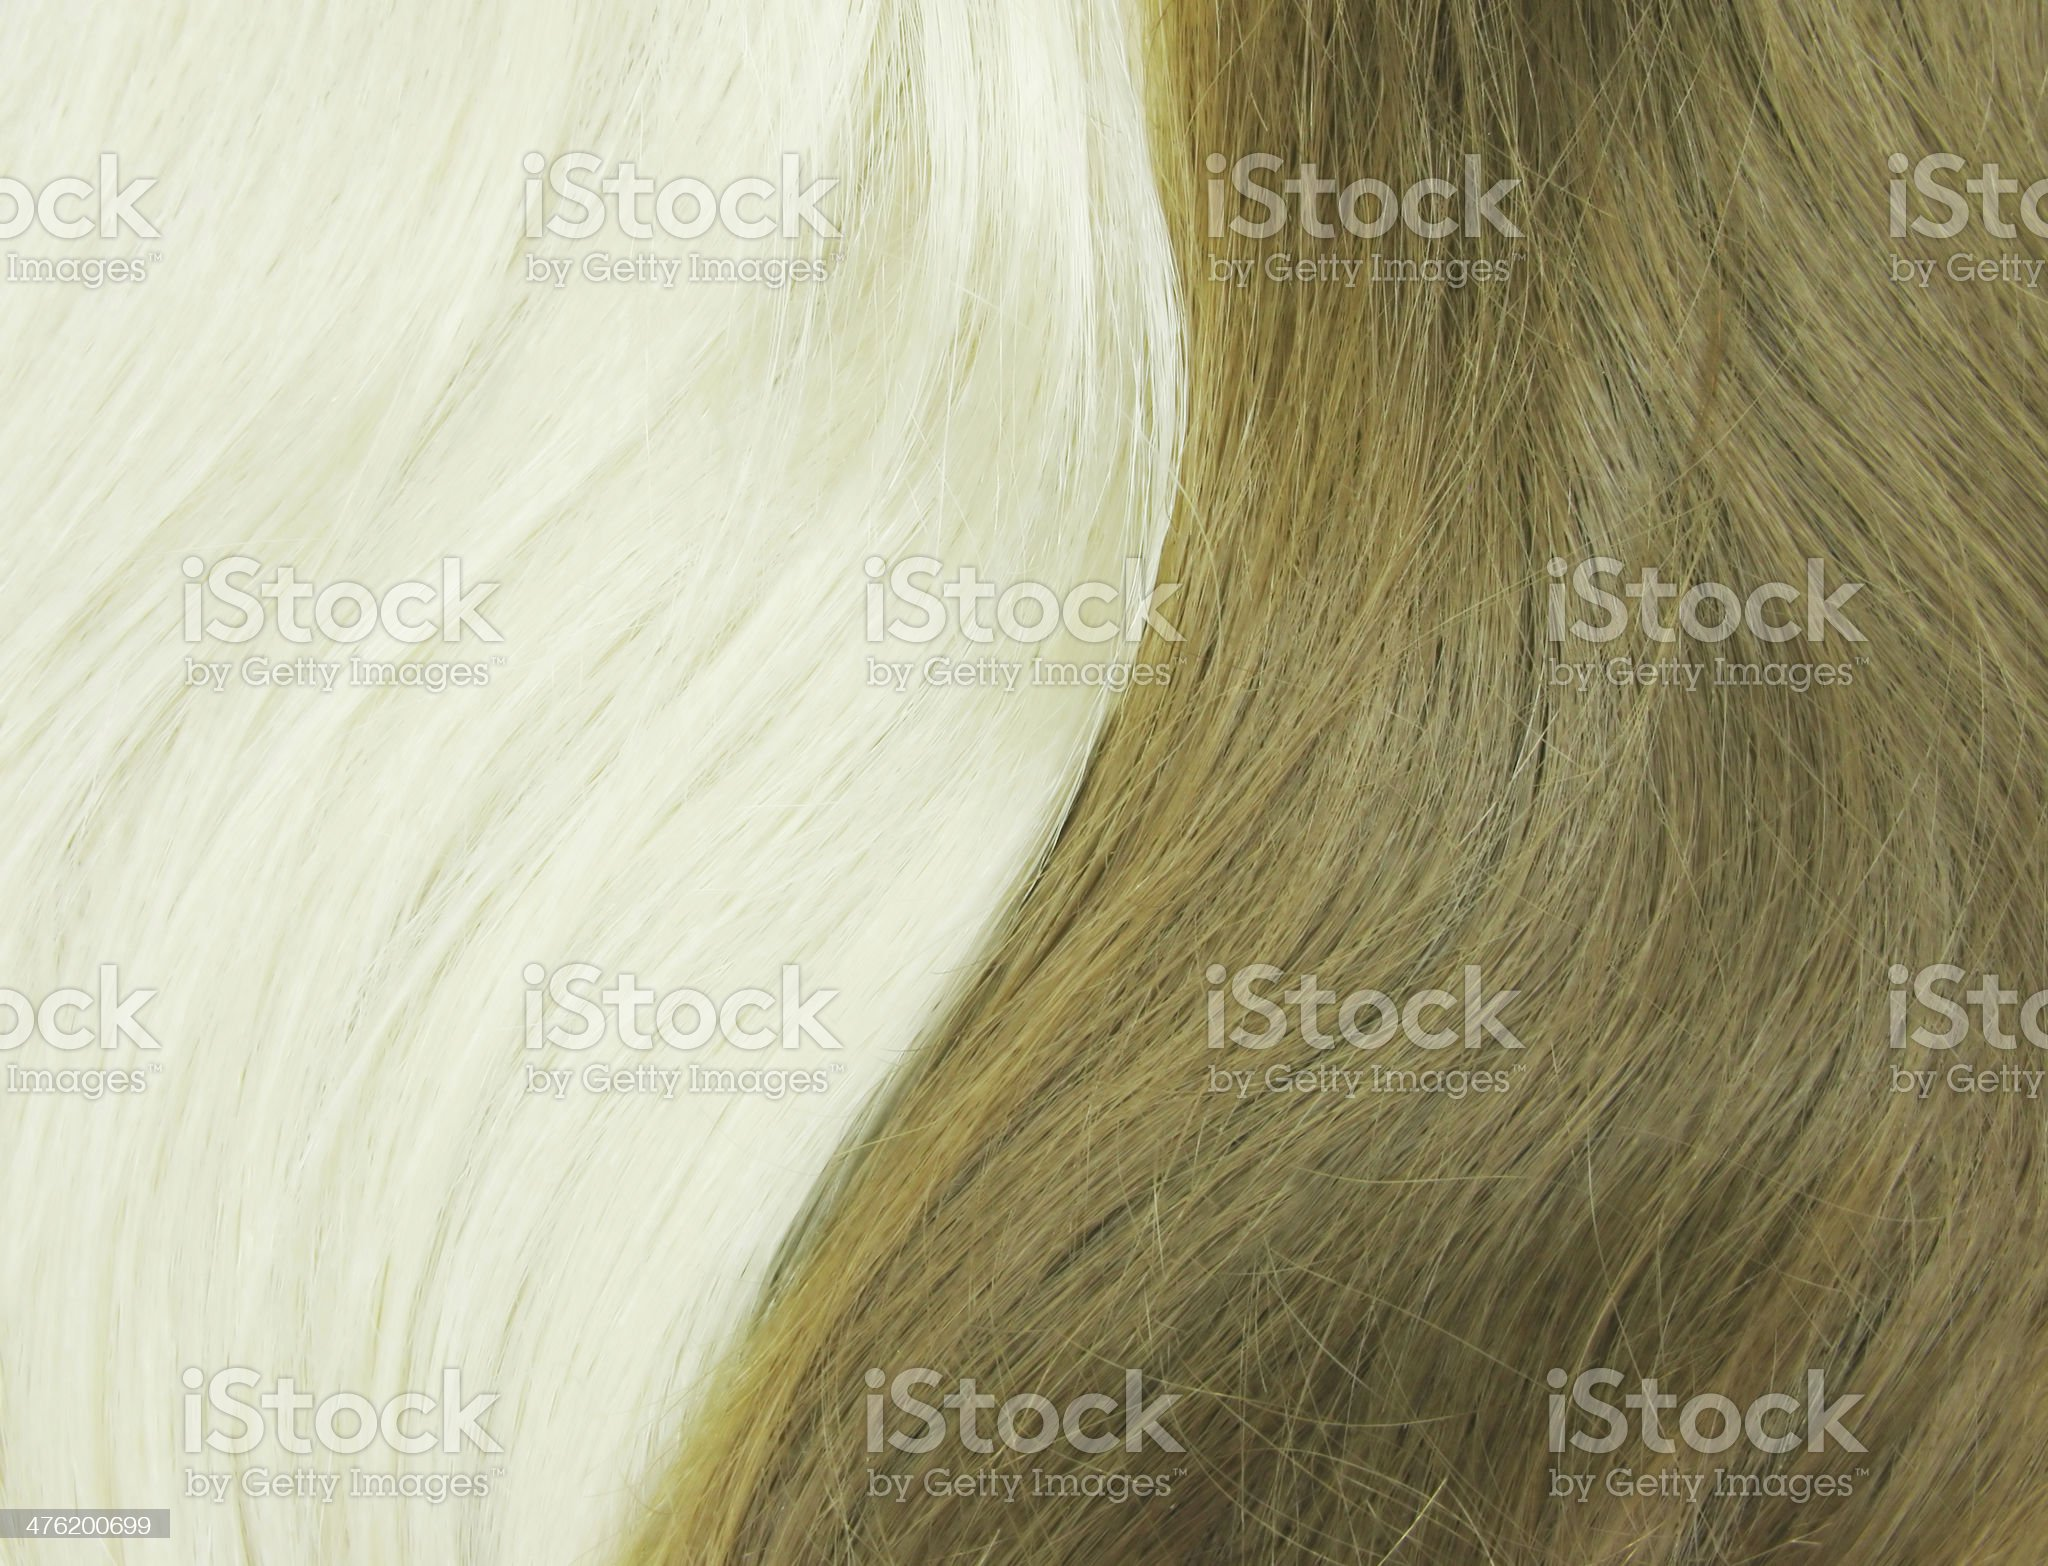 blond and black hair as texture background royalty-free stock photo